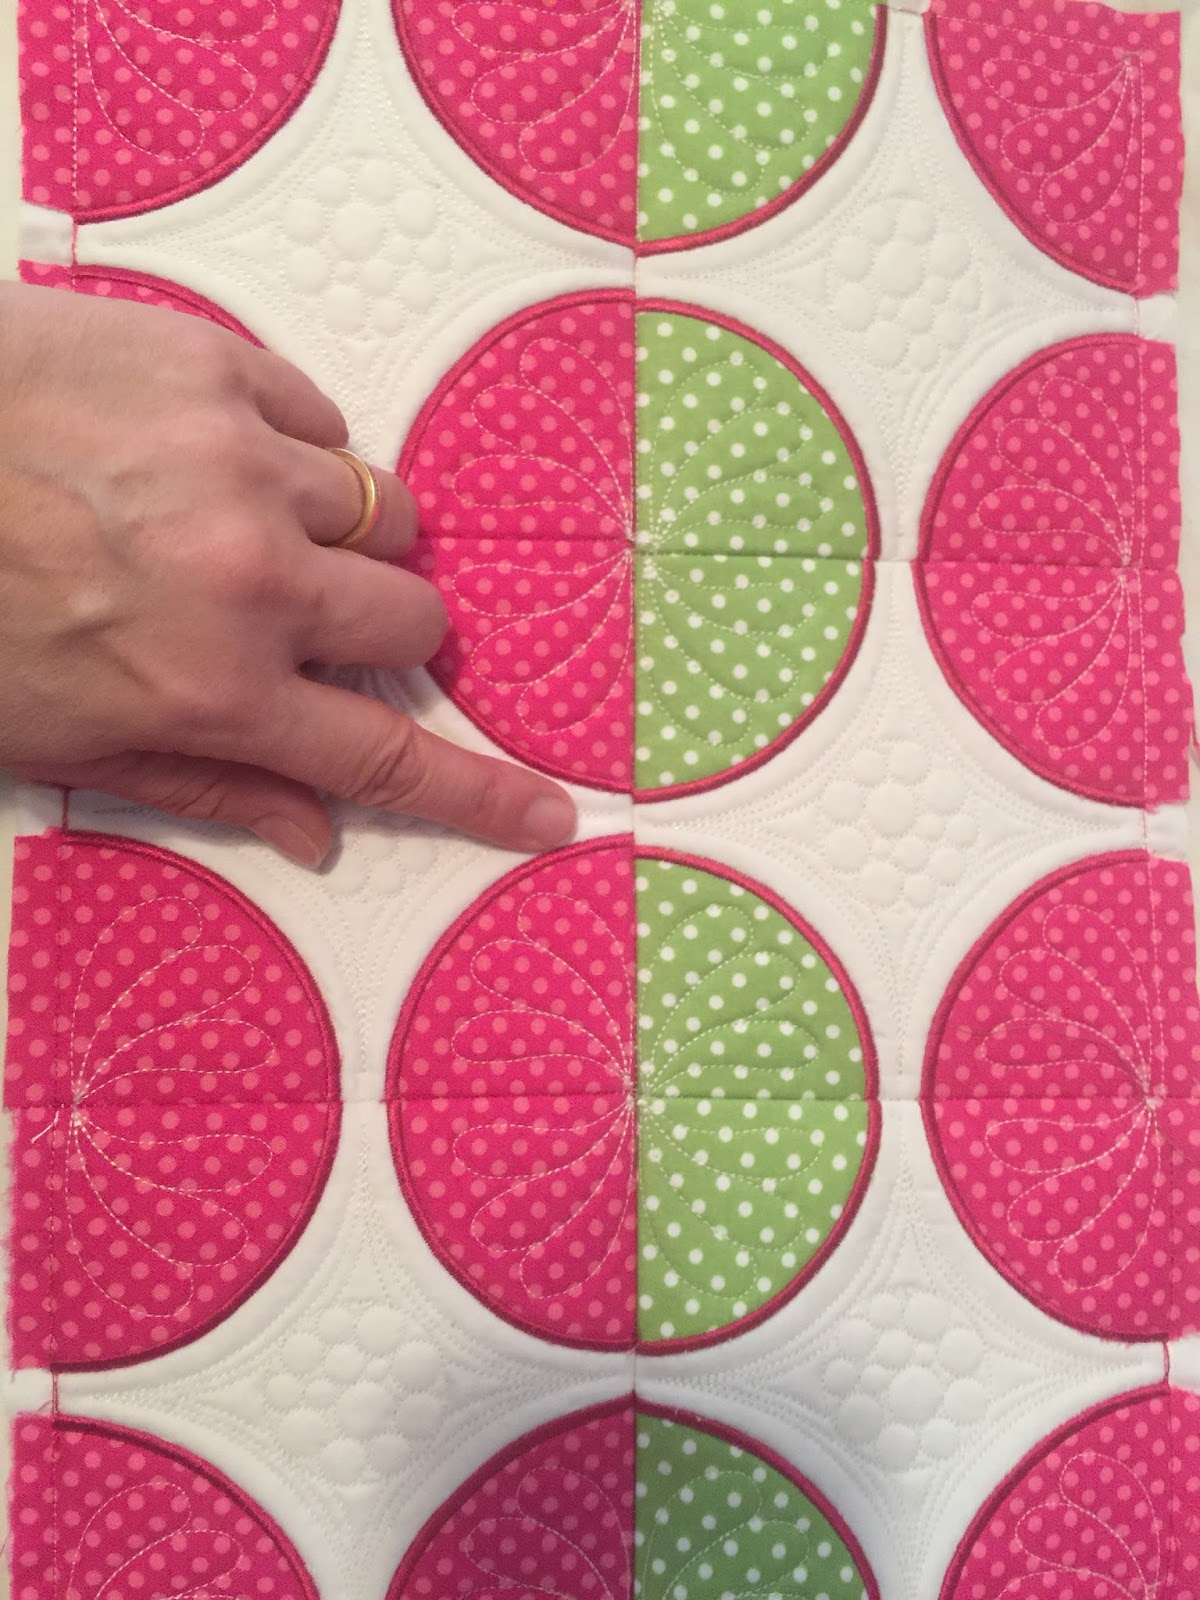 quilting with an embroidery machine